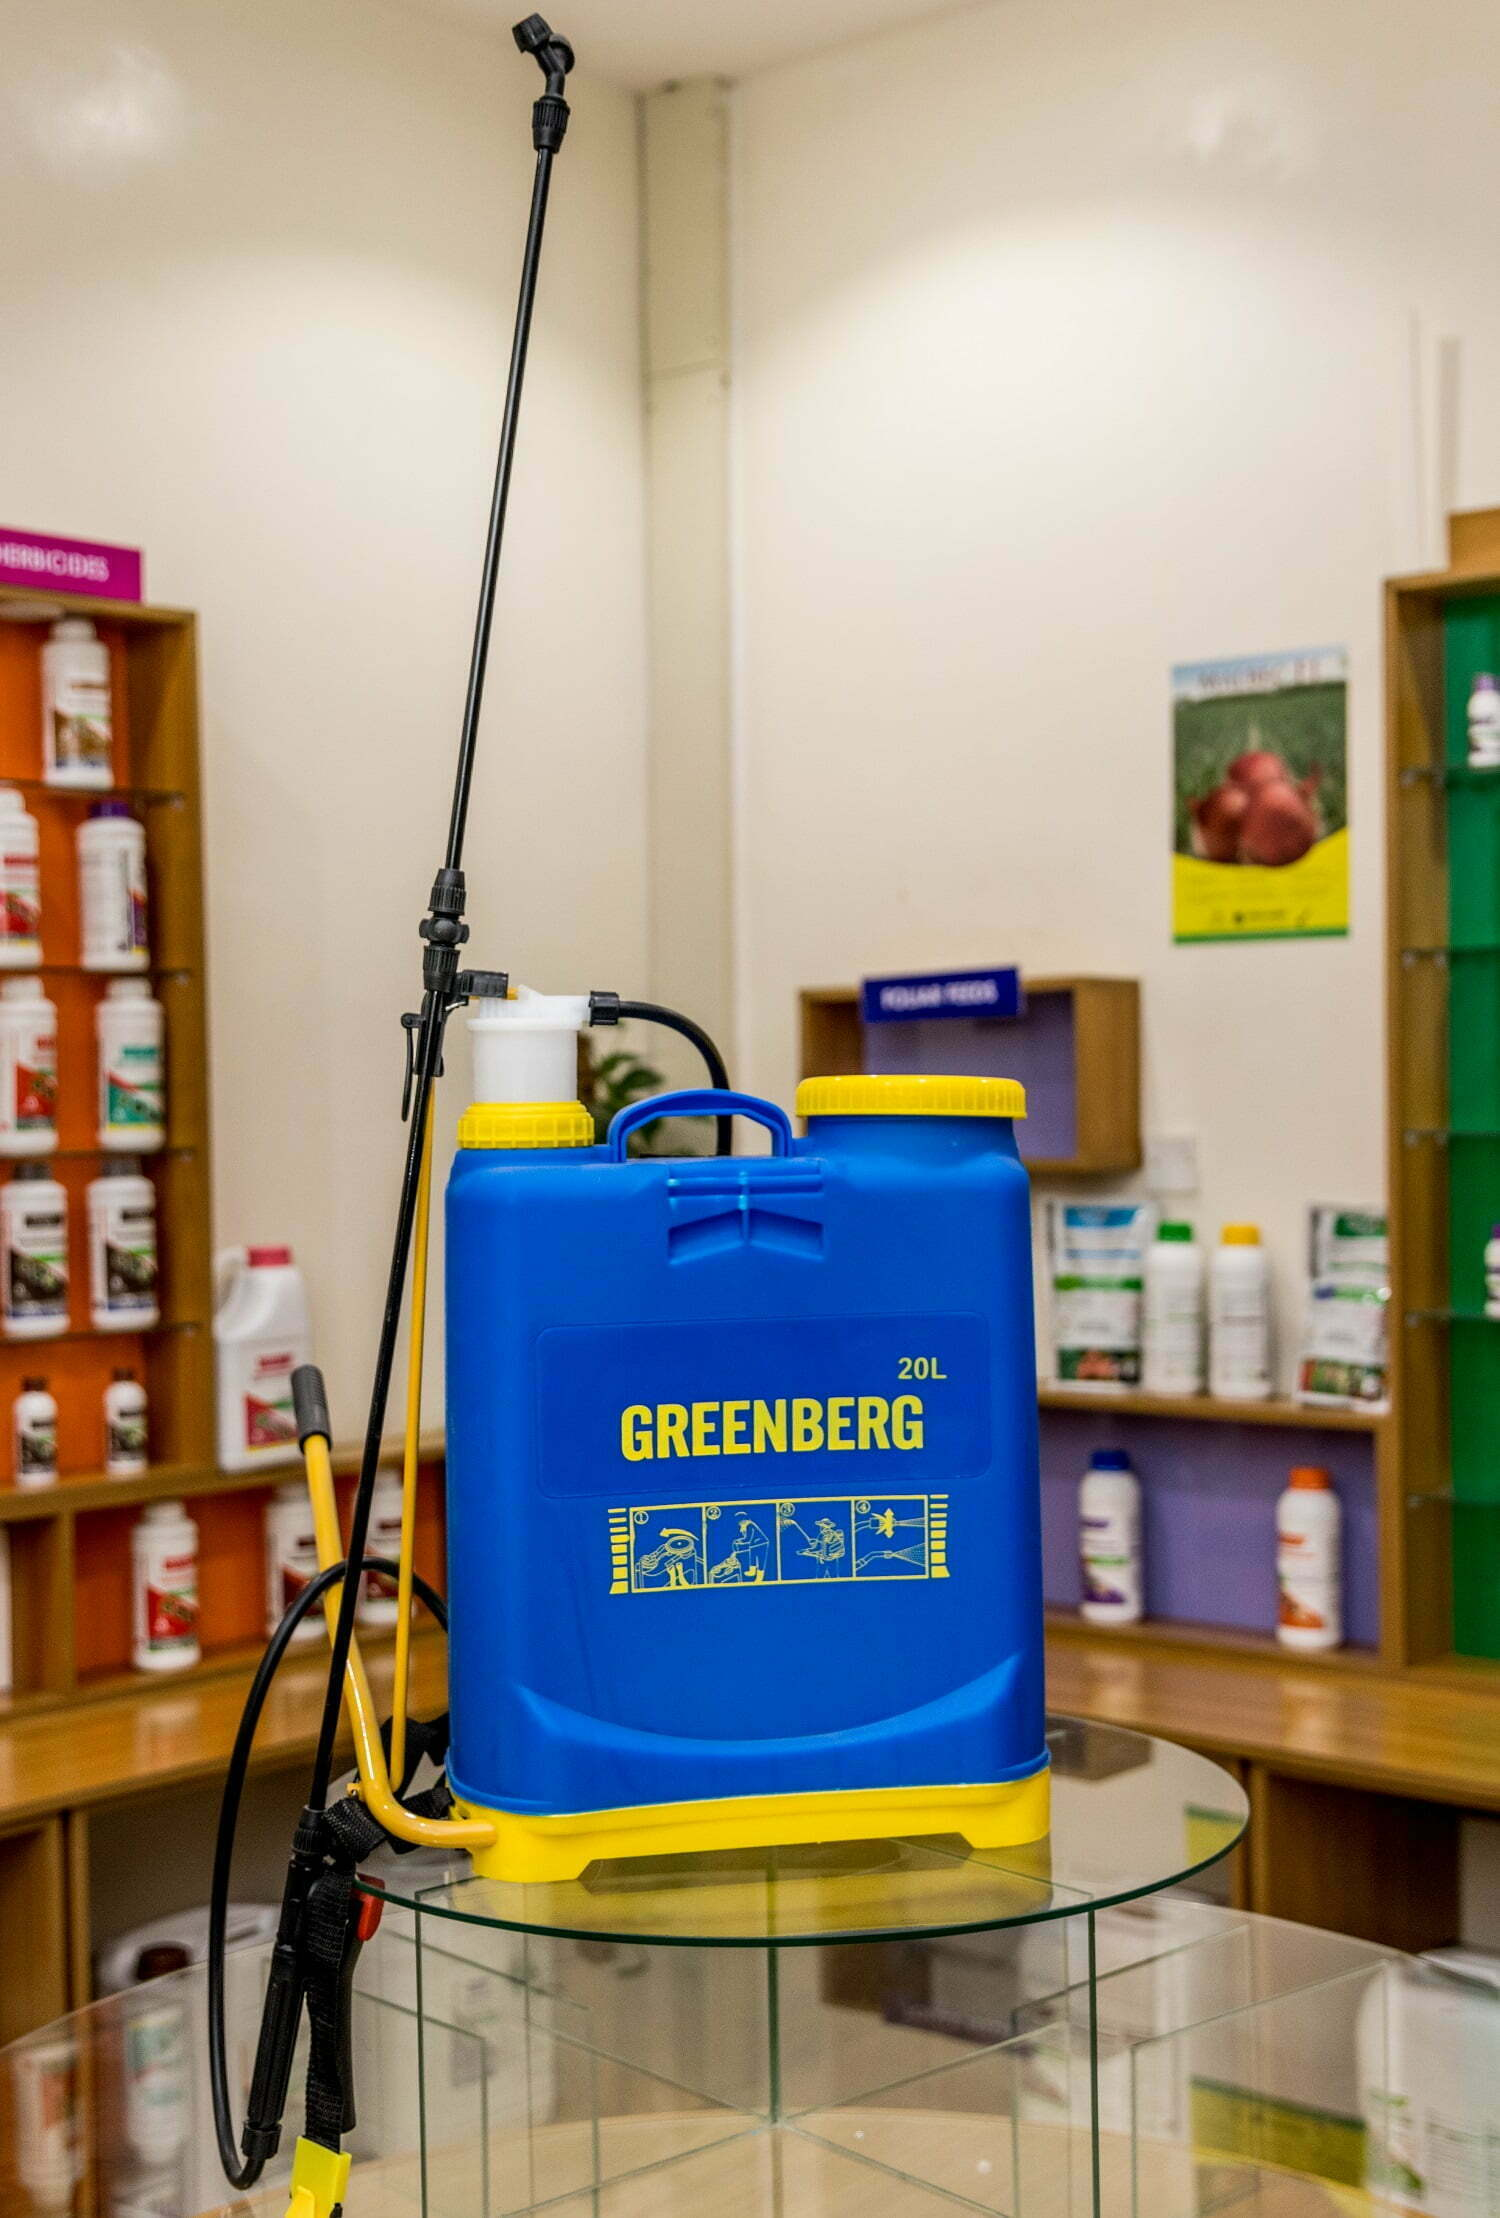 Greenberg knapsack Sprayer kenya